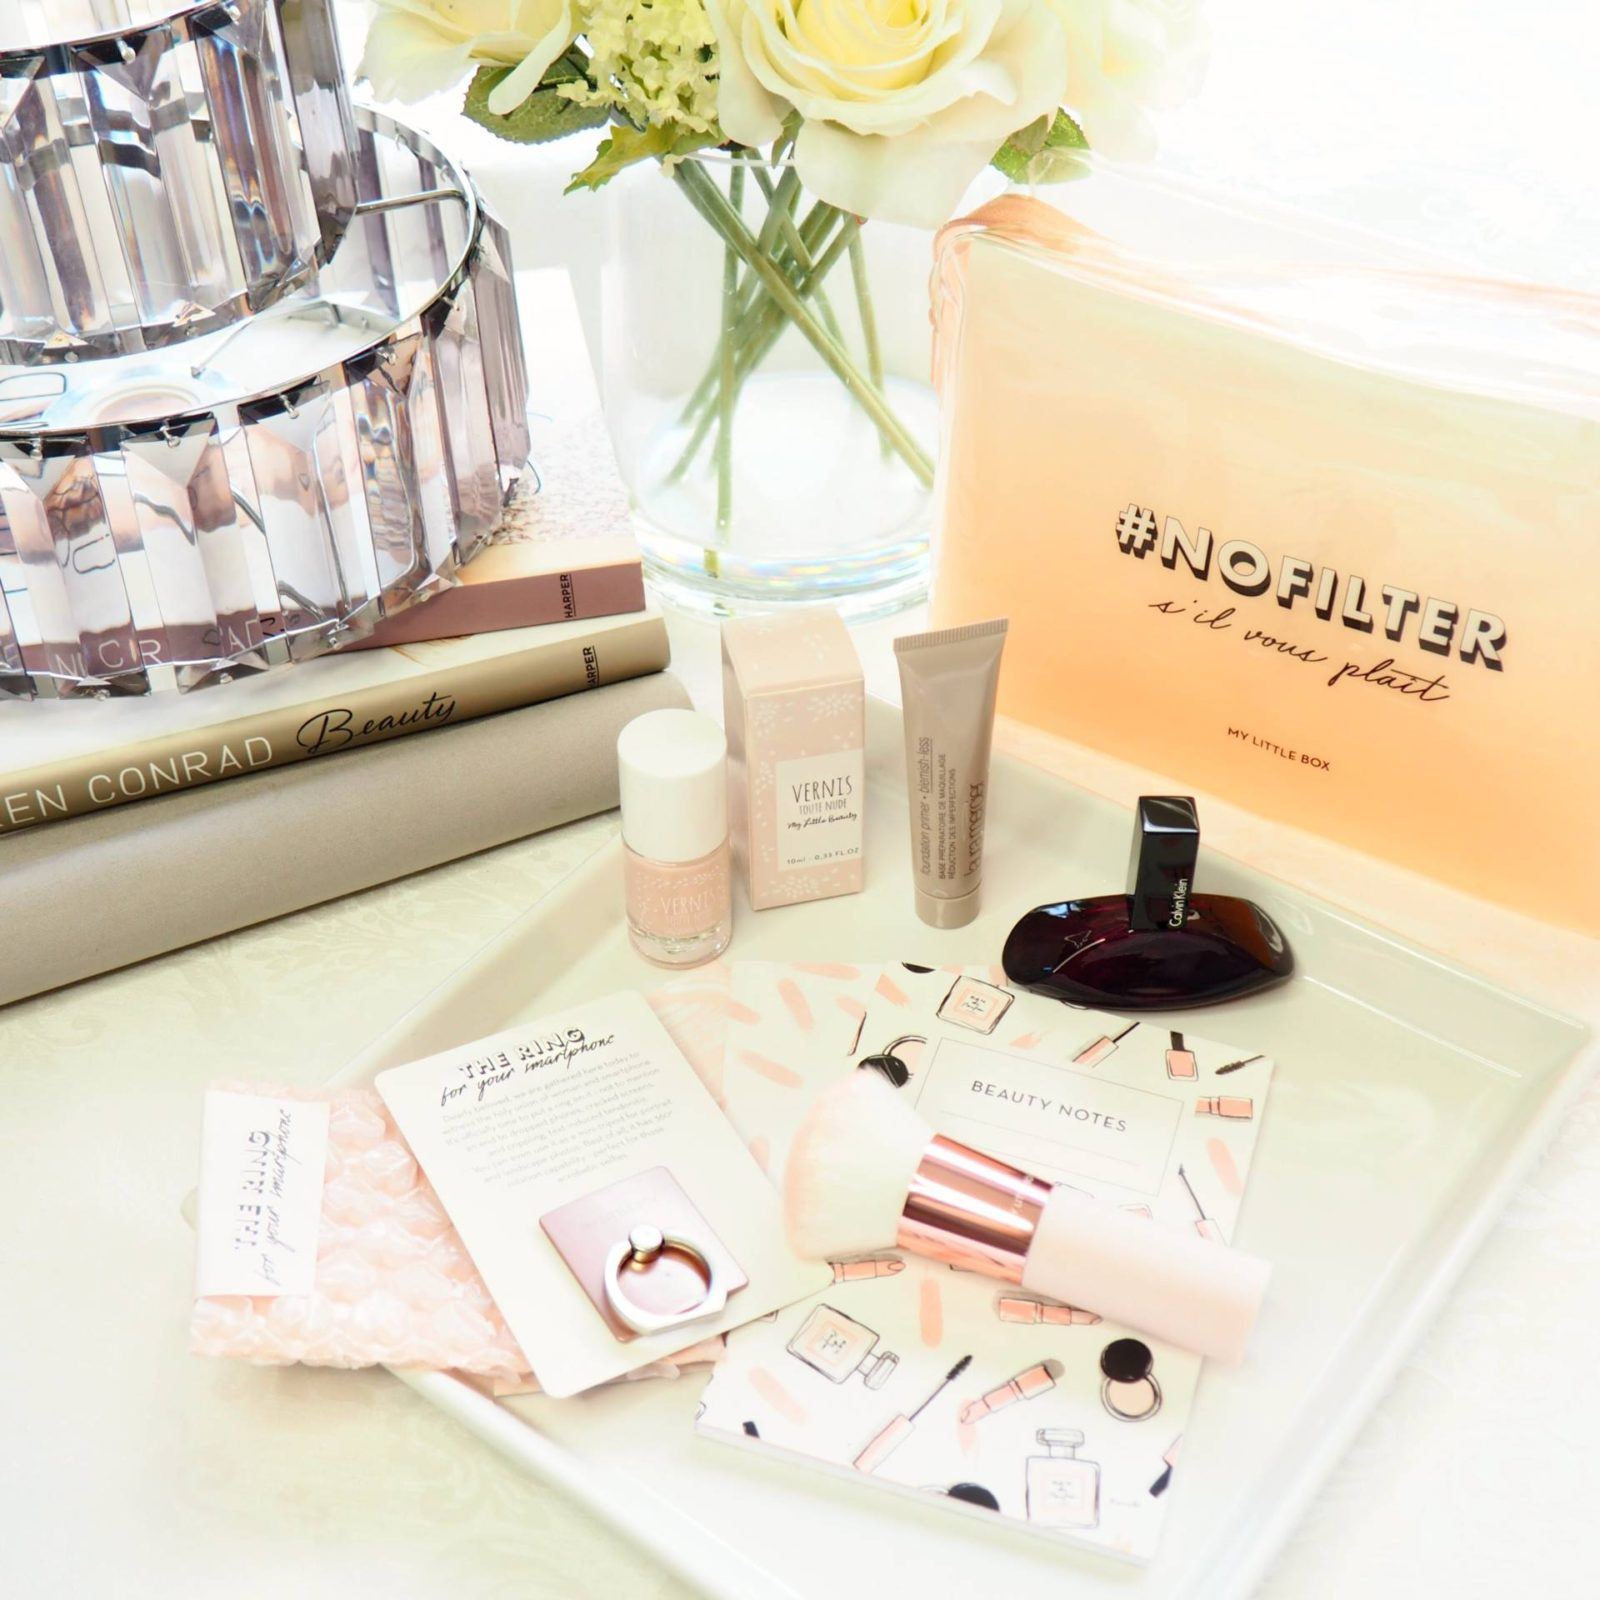 My Little Box March 2017 Review